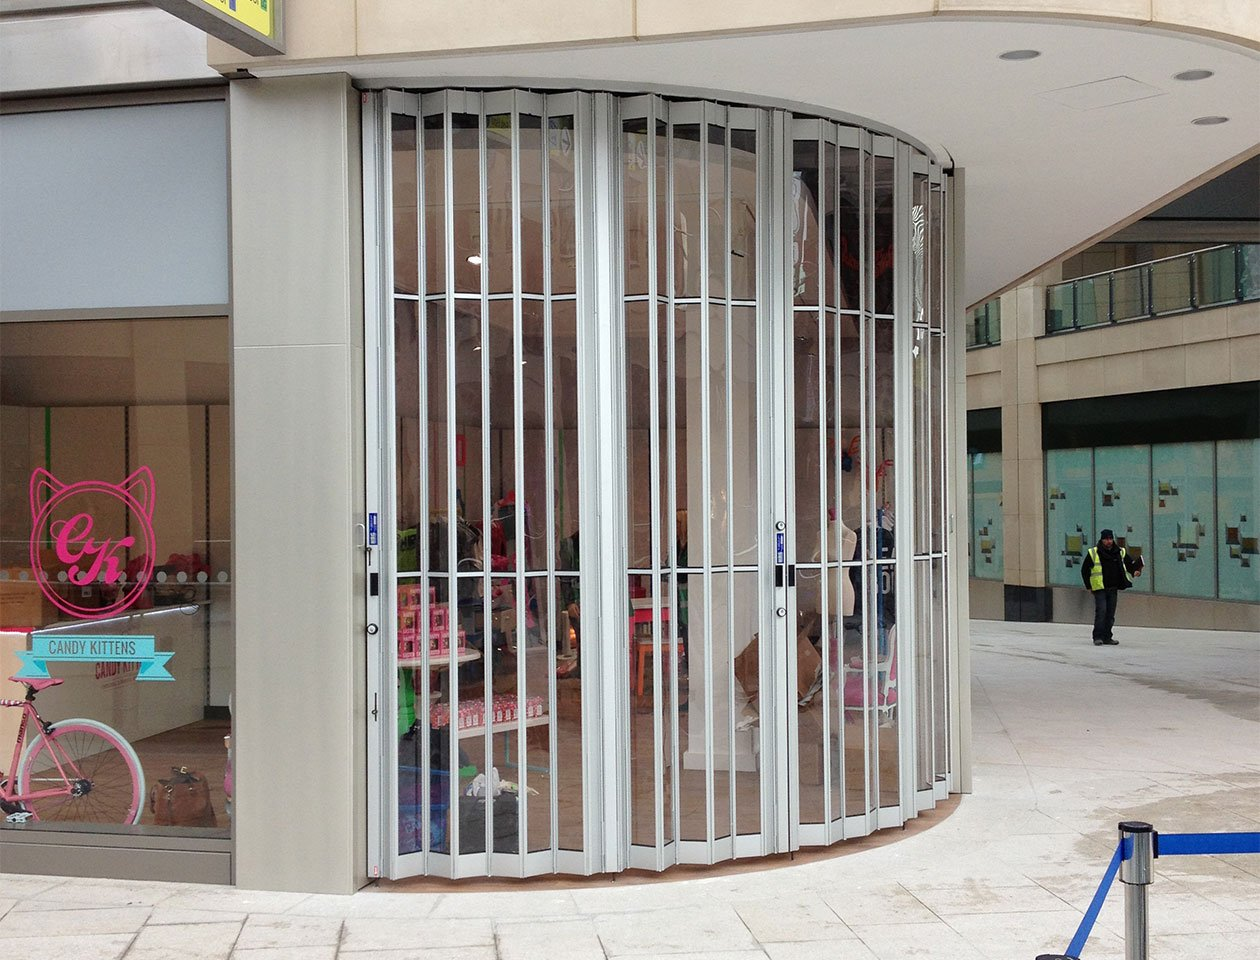 folding sliding shutters in situ at candy kittens shop